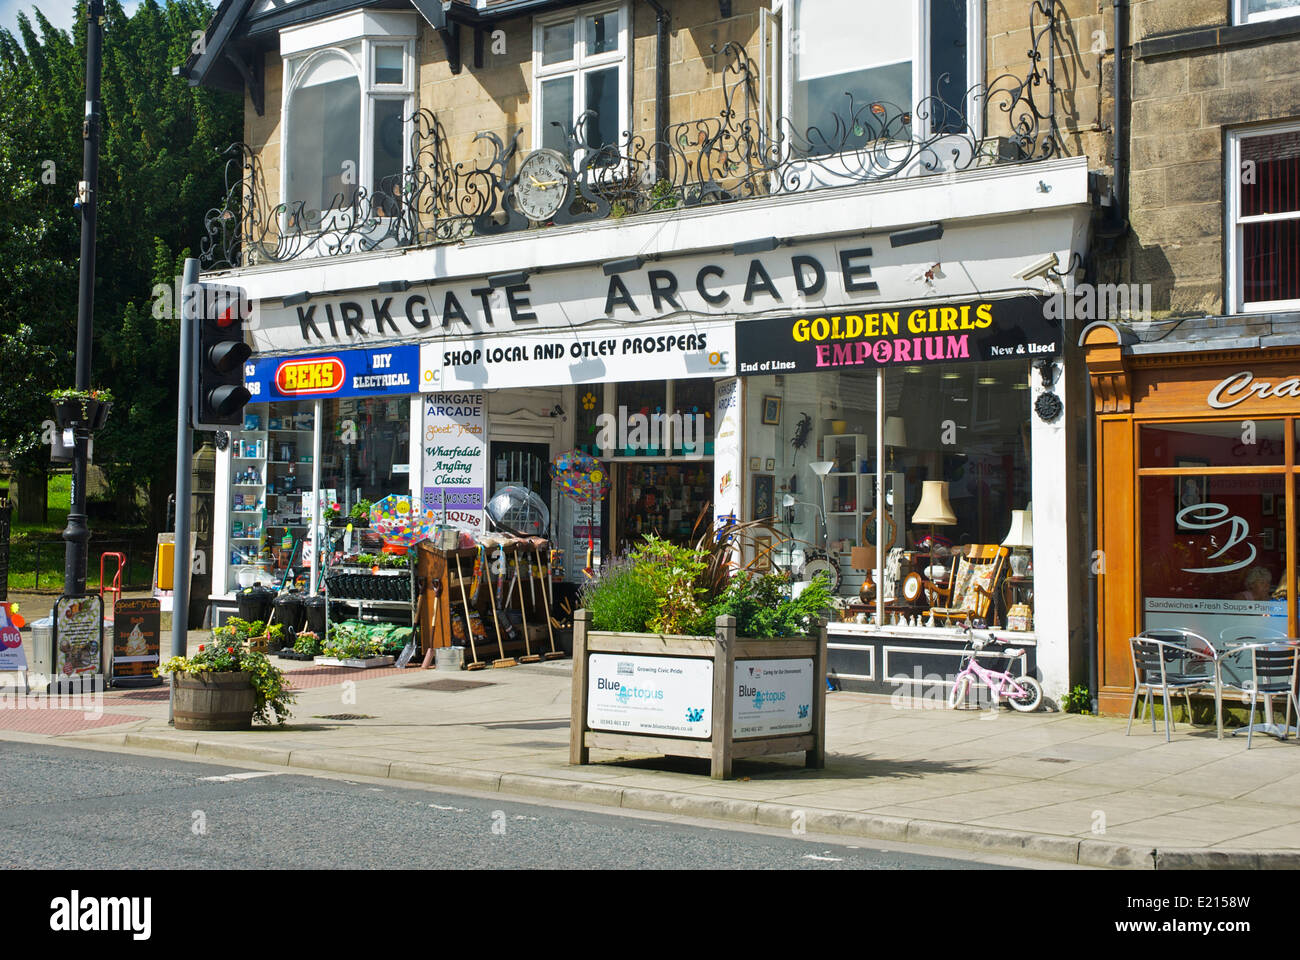 Kirkgate Arcade in Otley, West Yorkshire England UK - Stock Image